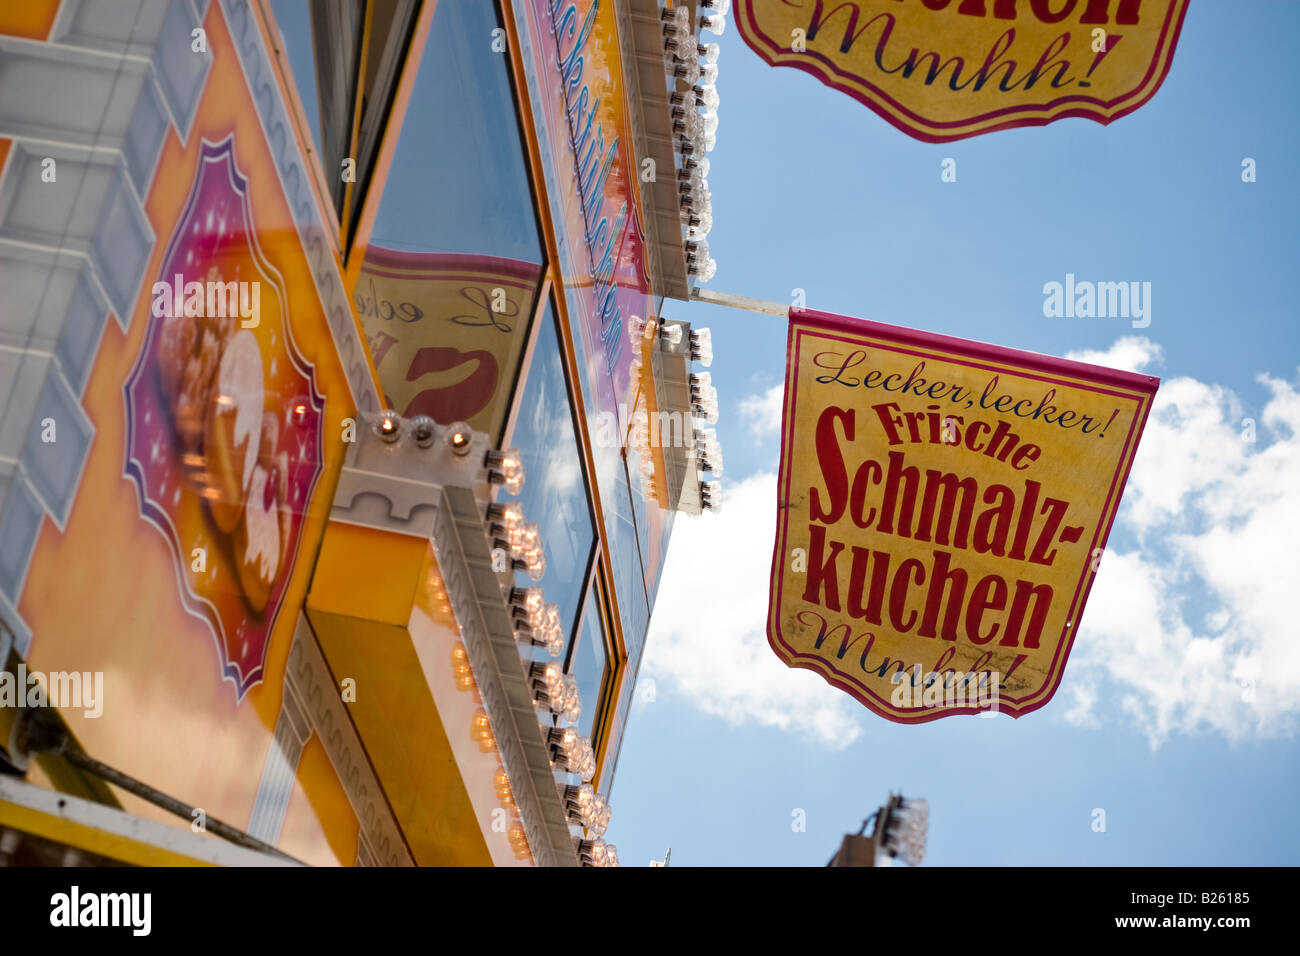 Sign advertising Schmalzkuchen a local culinary speciality at Hafengeburtstag a street party in the harbour of Hamburg, Stock Photo